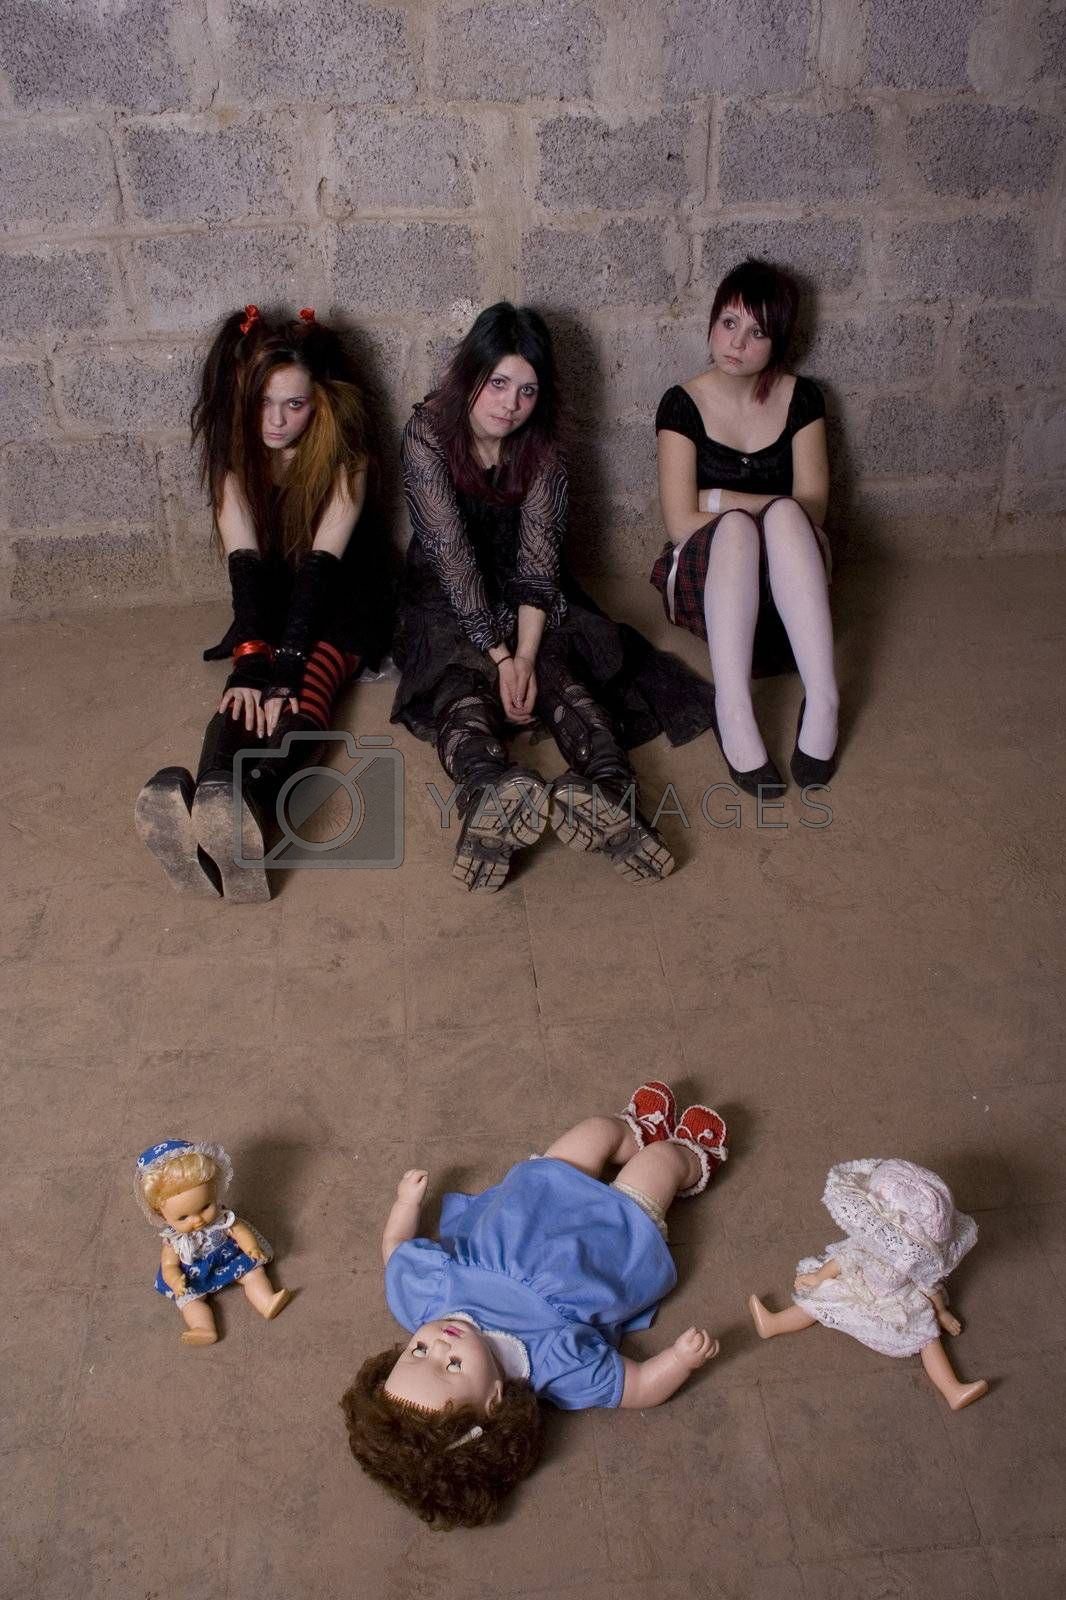 Girls with dolls sit on a floor in depression